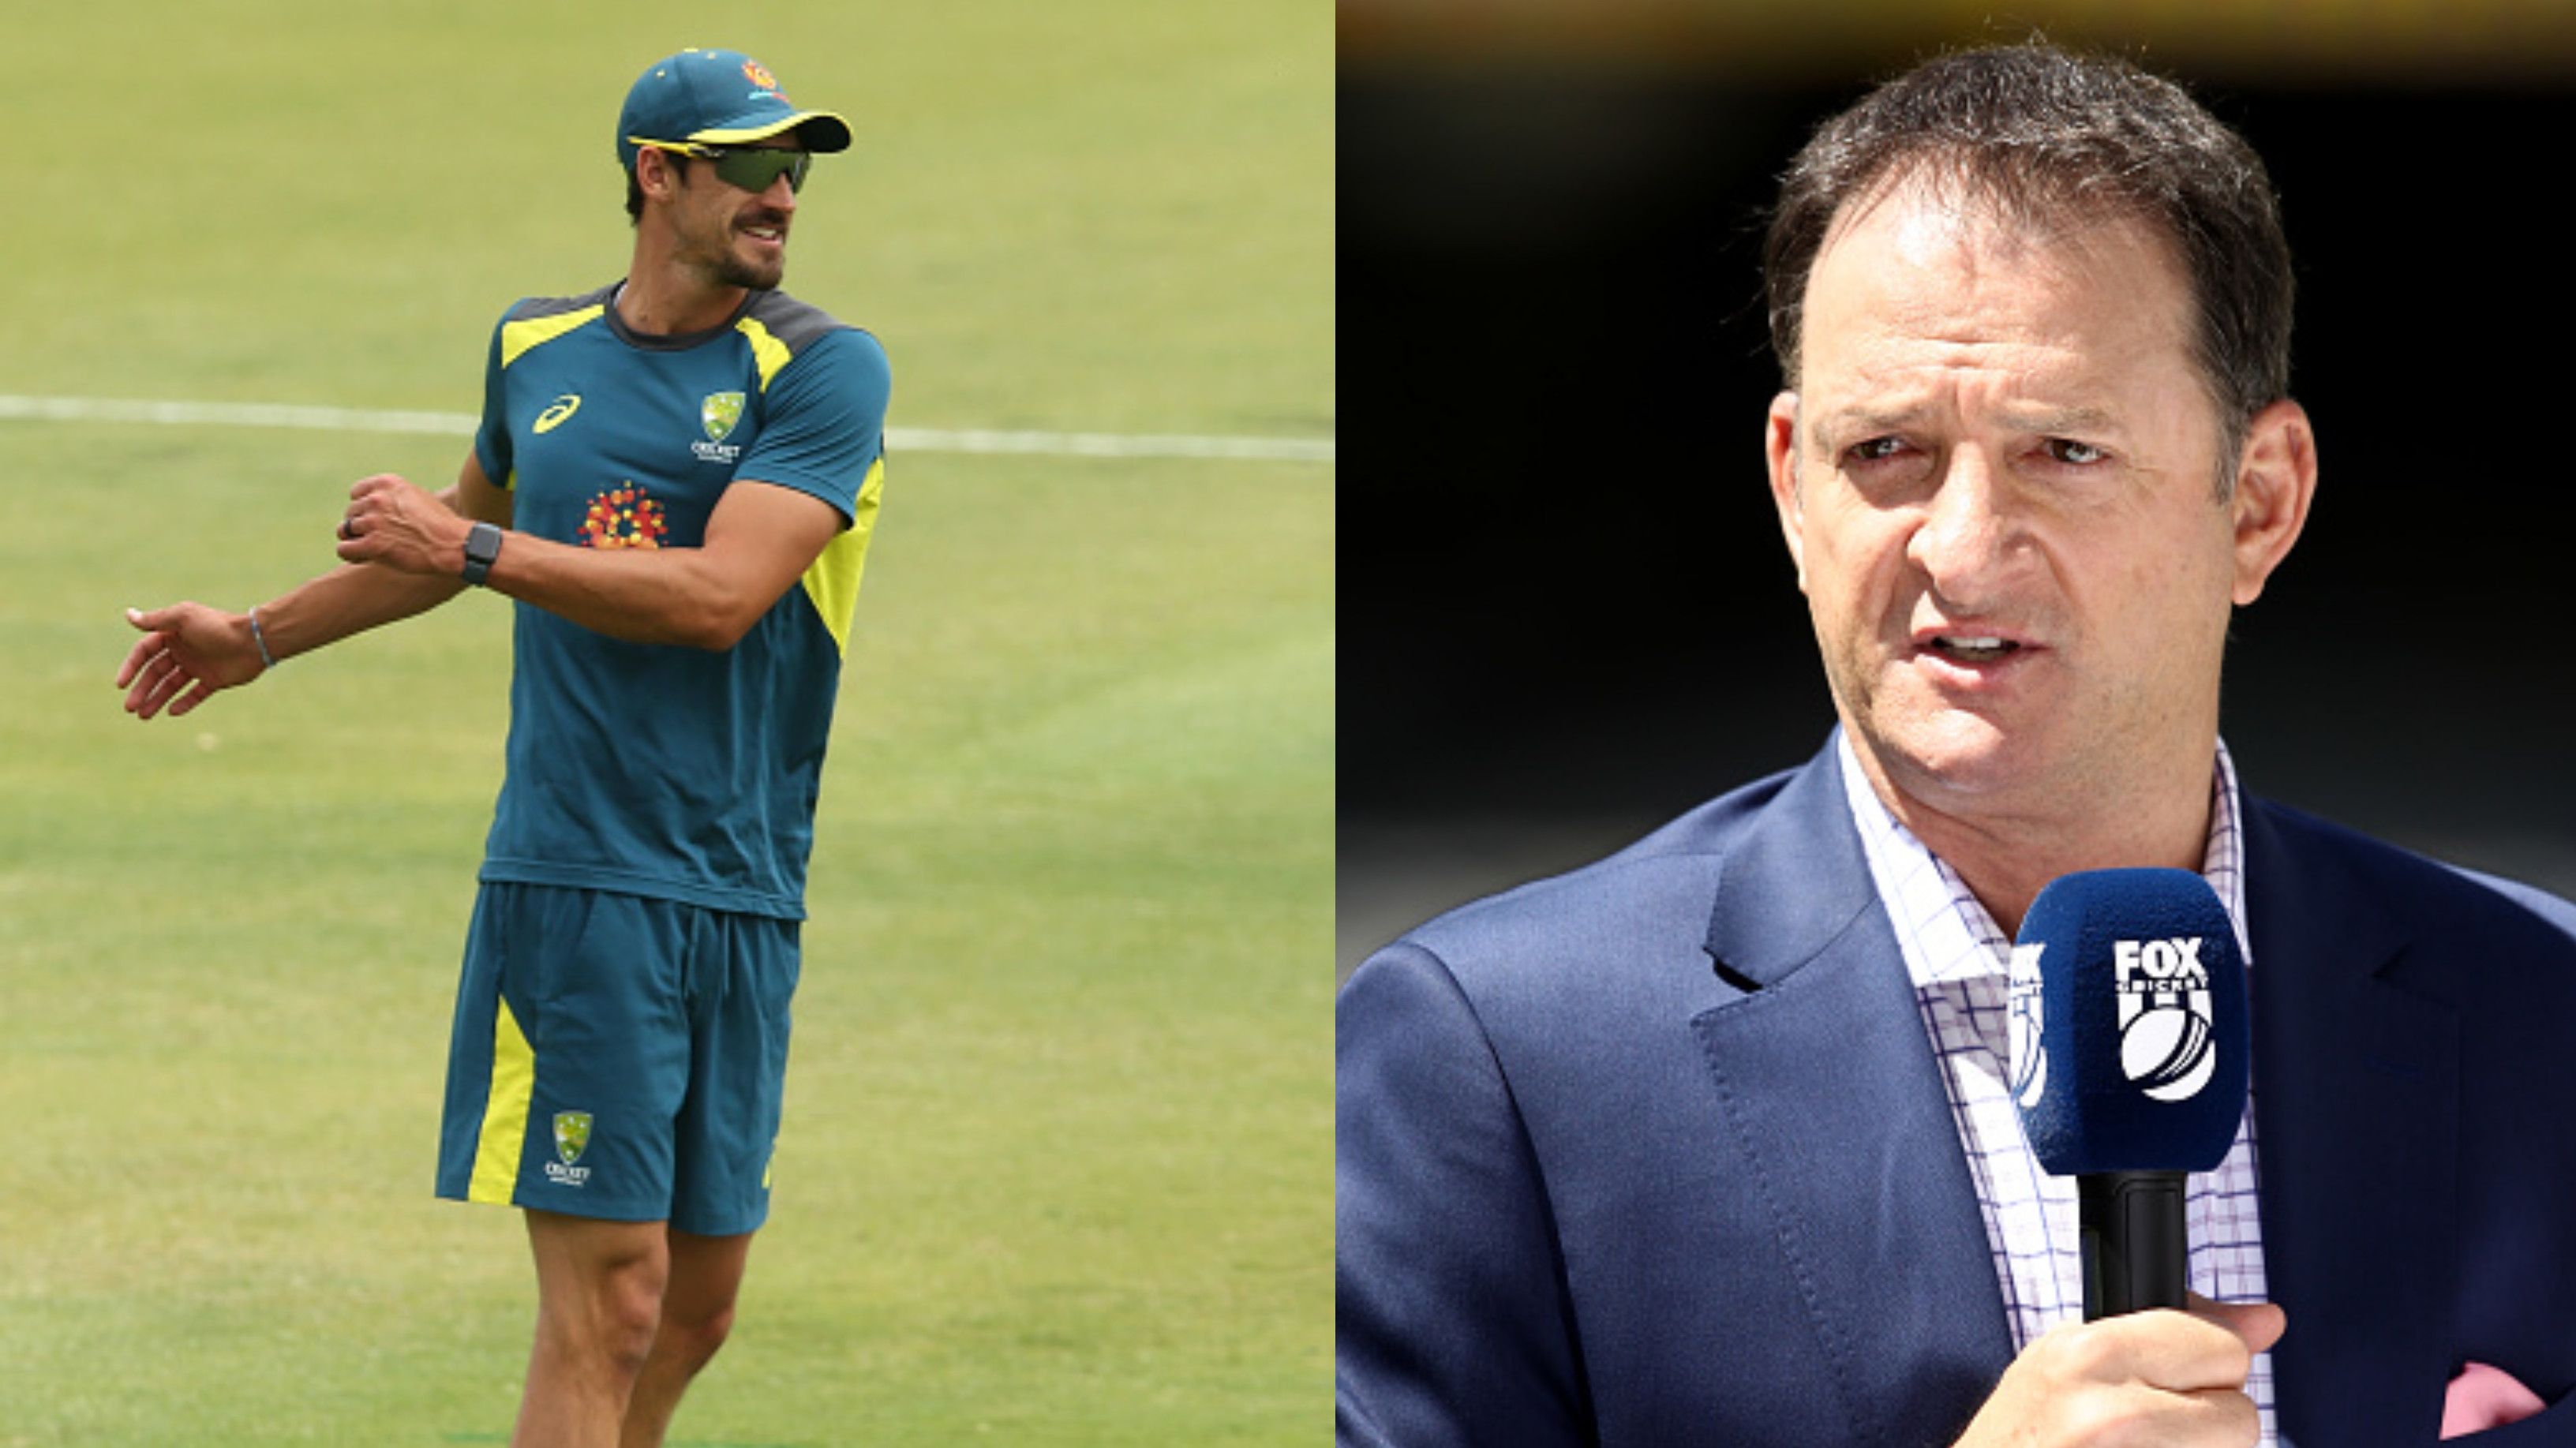 AUS v IND 2018-19: Mitchell Starc might be dropped if he fails in Perth, says Mark Waugh